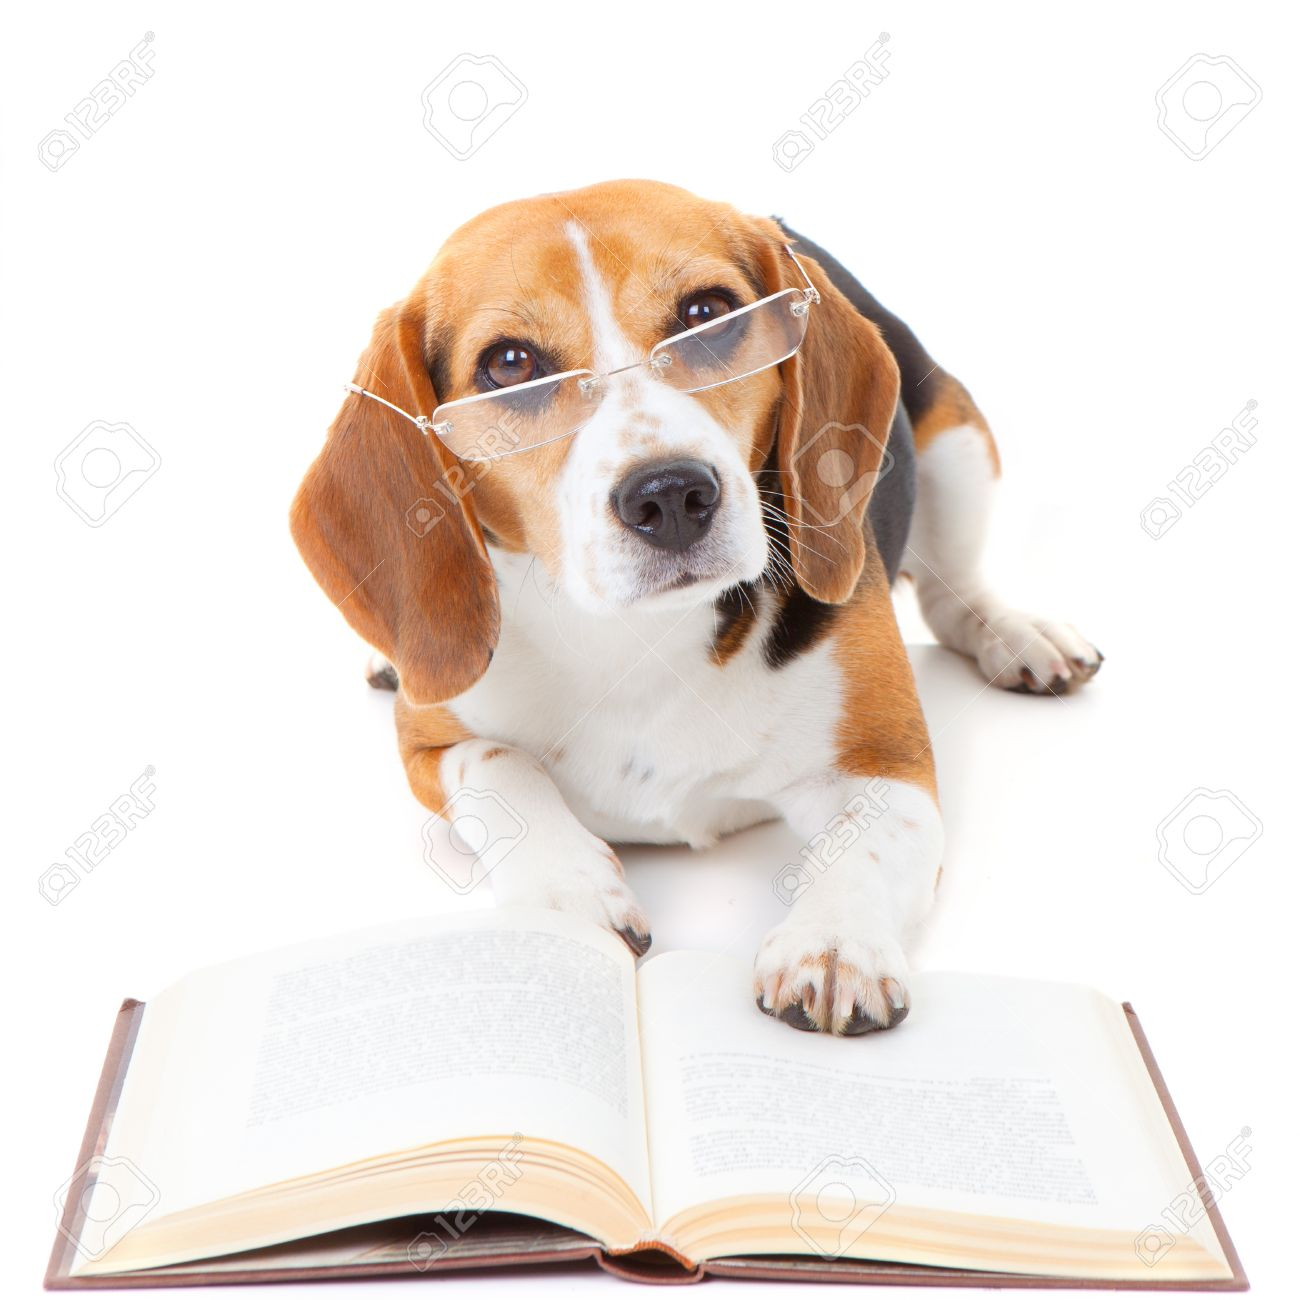 Dog Wearing Reading Glasses Beagle Dog Wearing Glasses